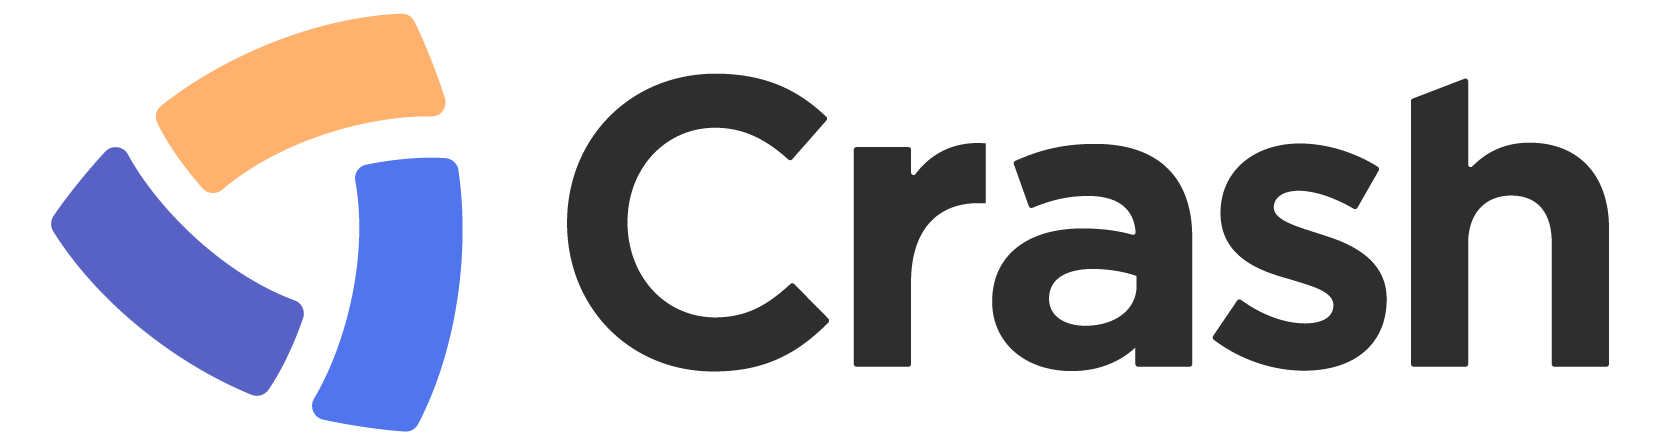 Crash LogoInline Full Color.png